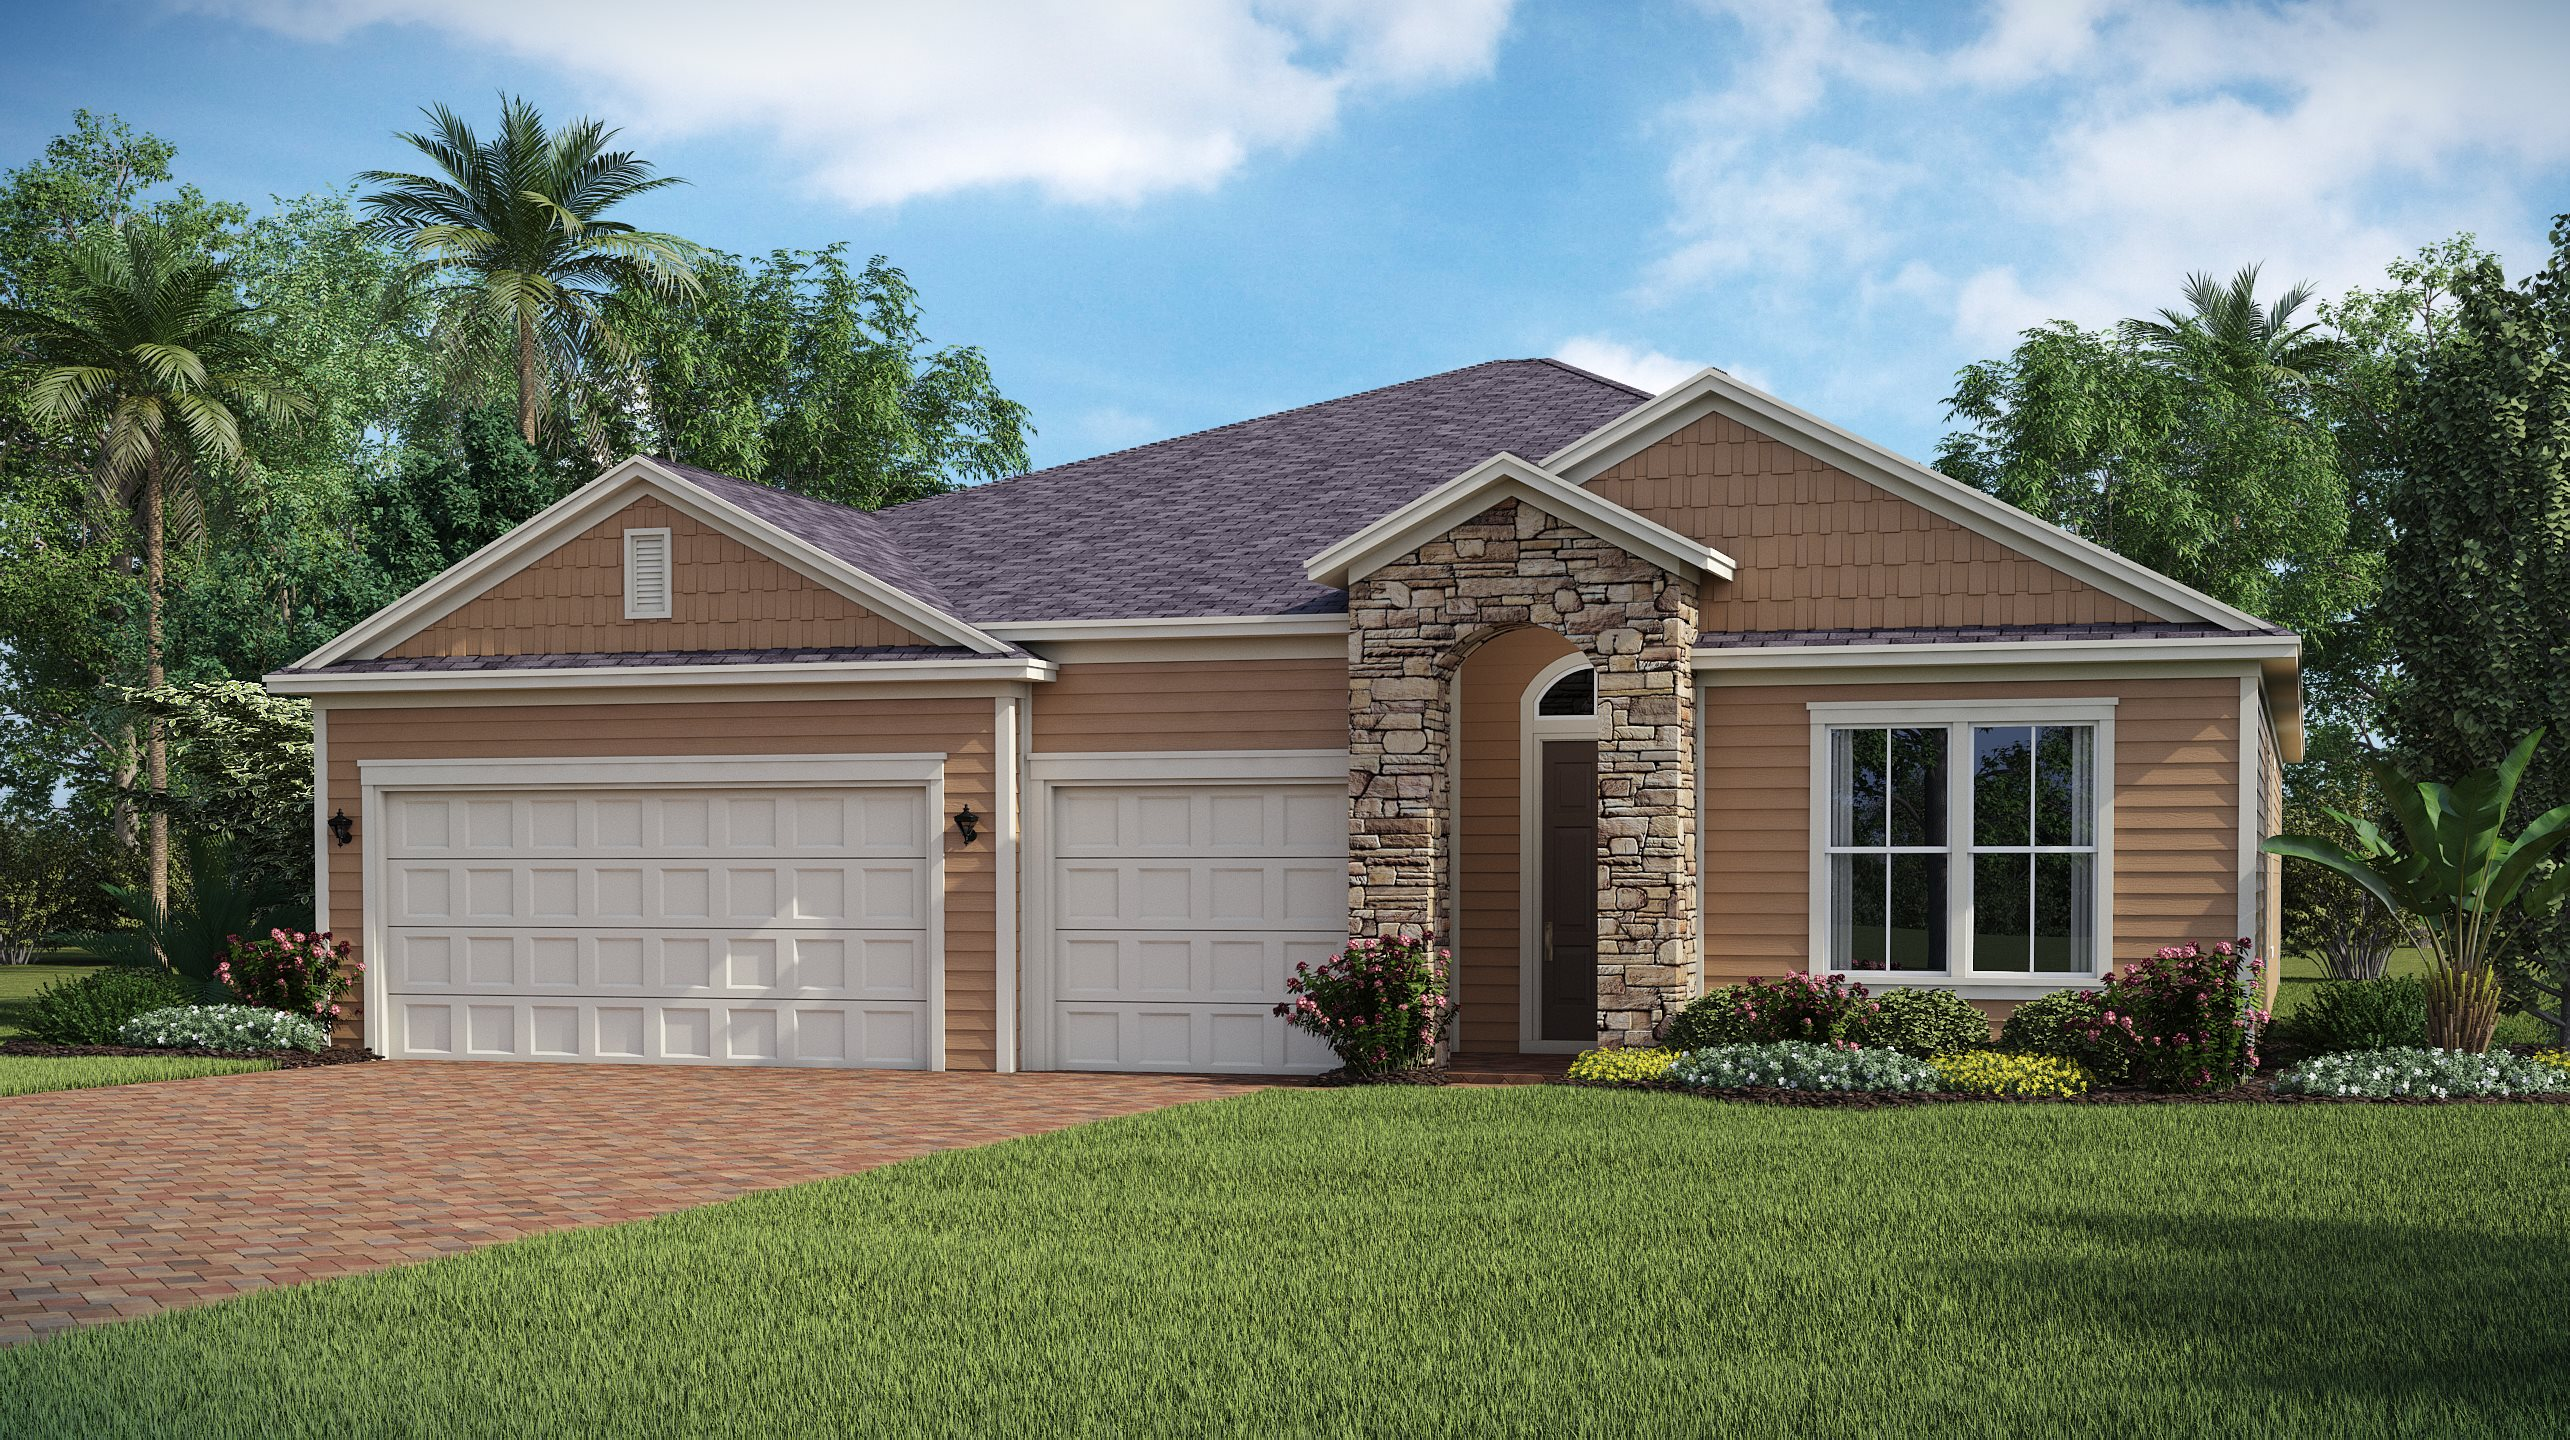 Creekside-at-Twin-Creeks Creekside 63' Imperial Collection MEDALLION HA